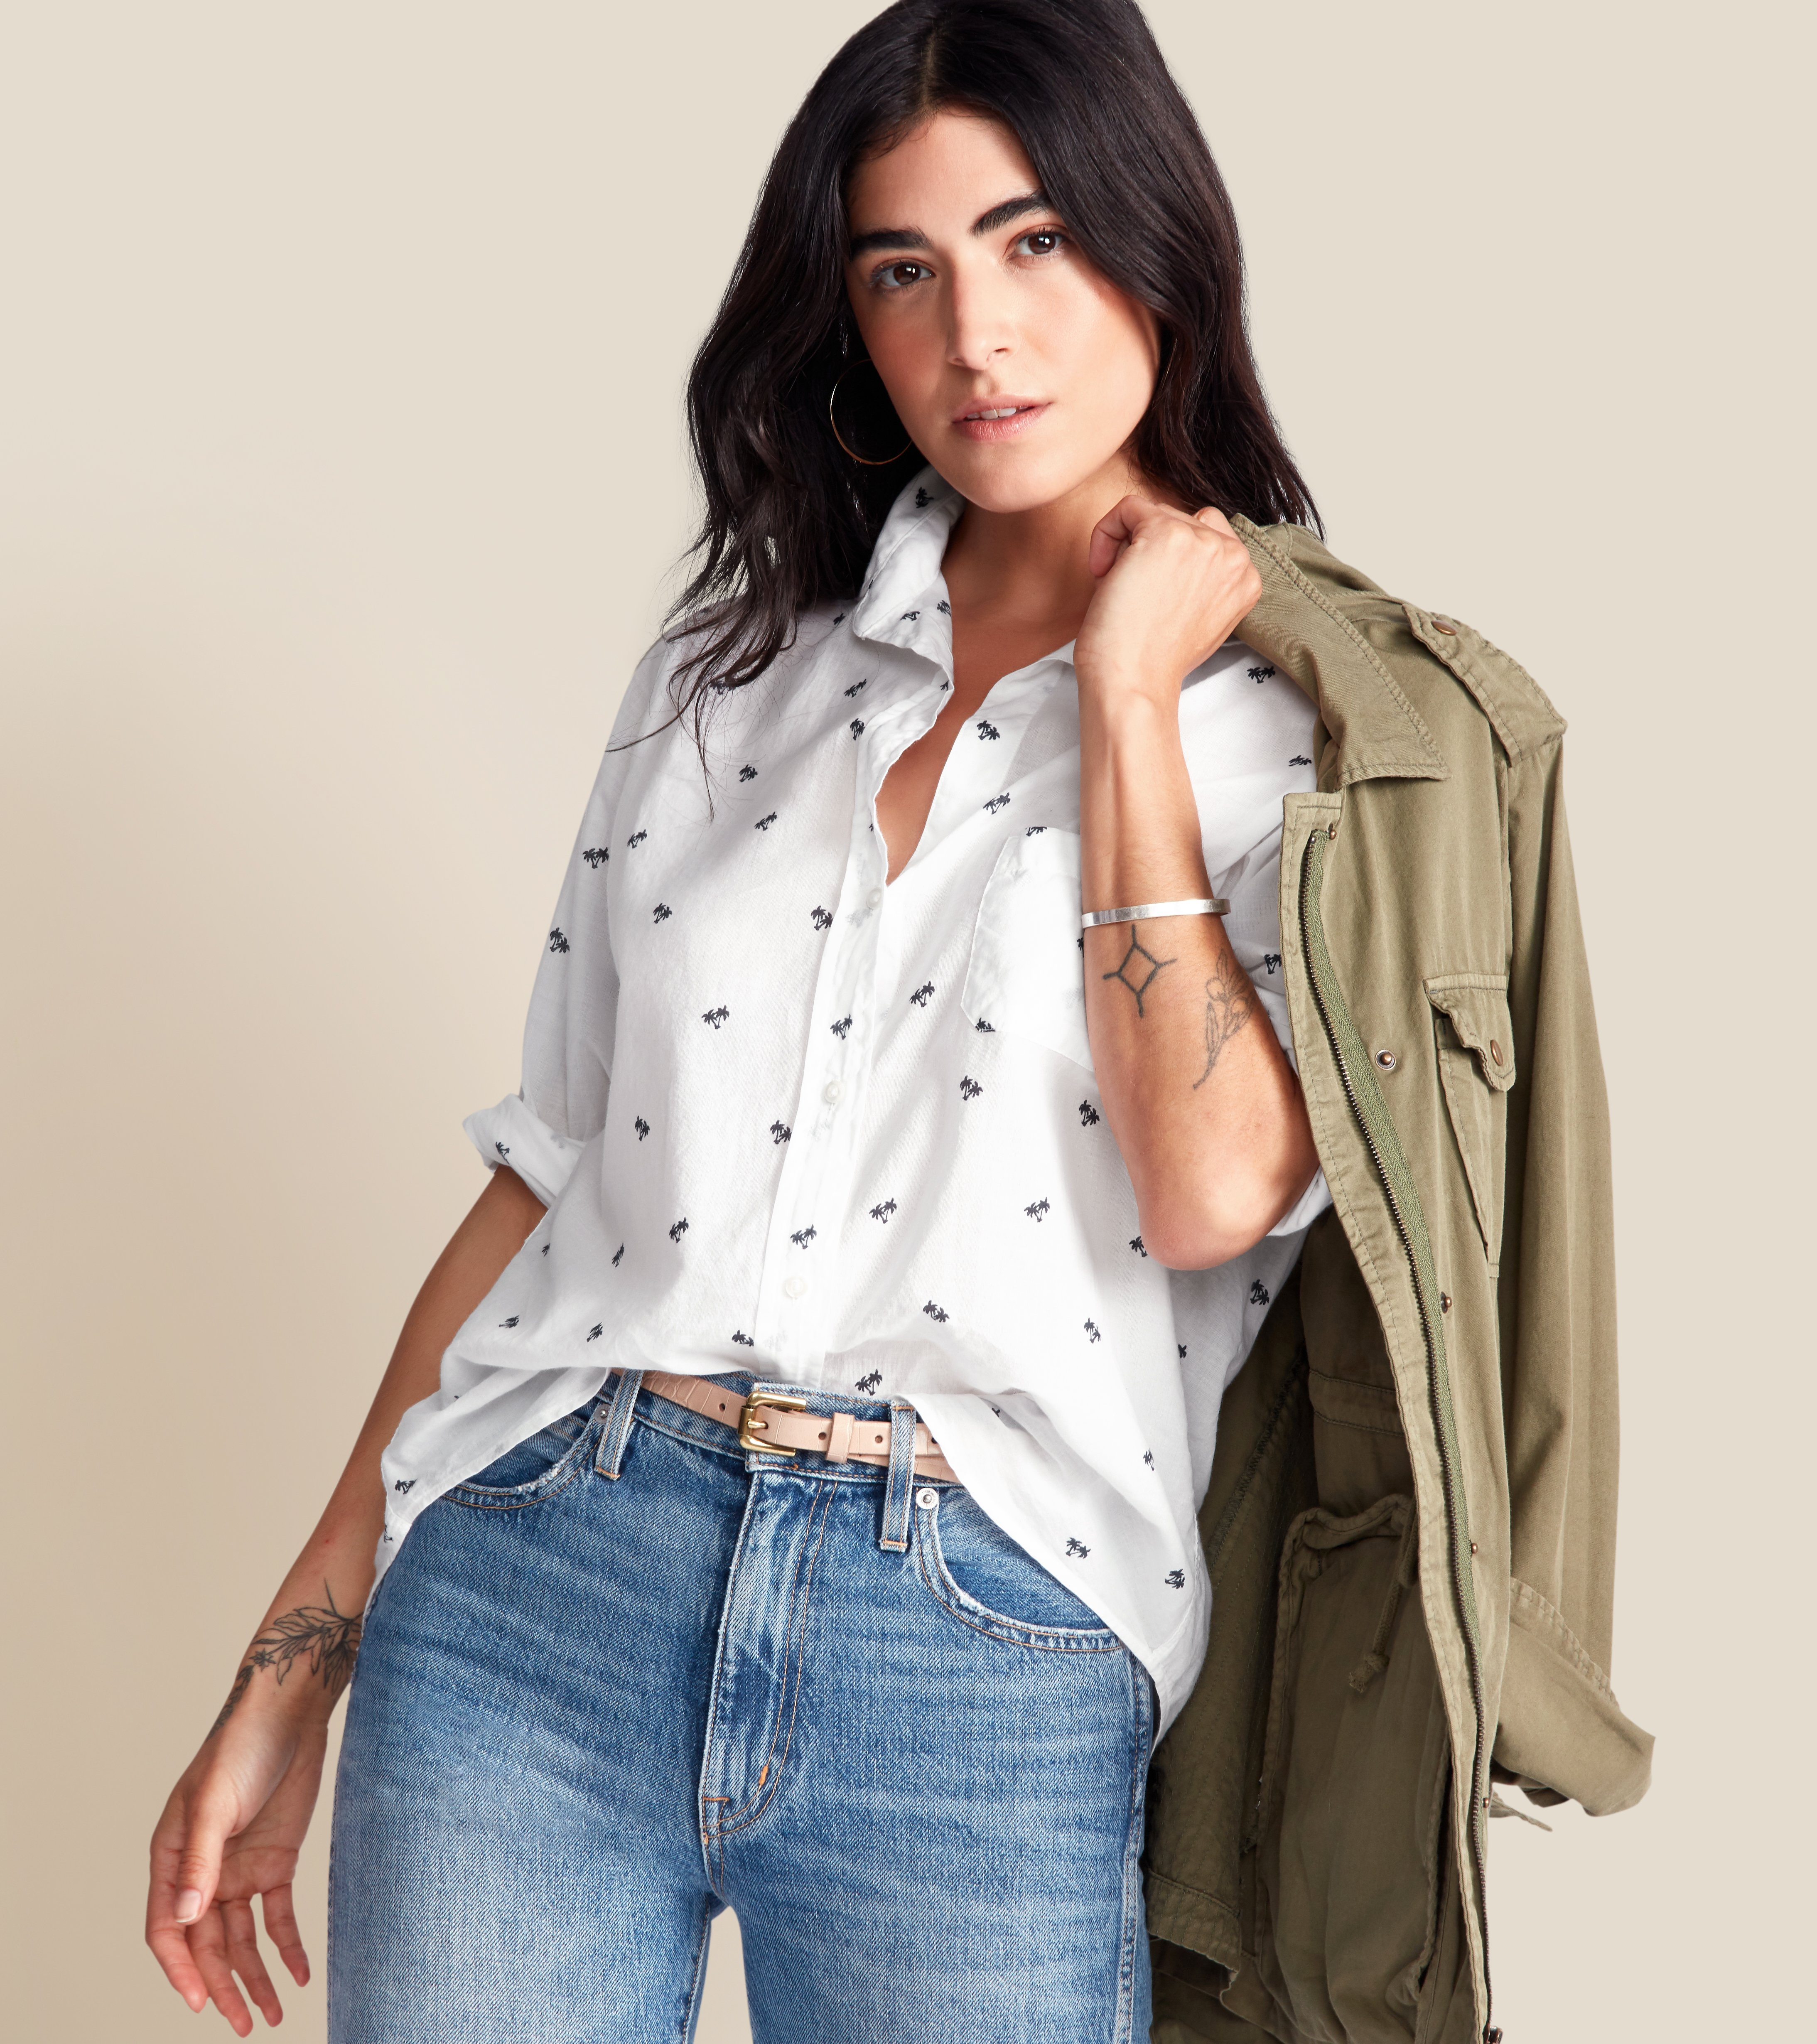 The Hero Button-Up Shirt White with Navy Palm, Tissue Cotton view 1